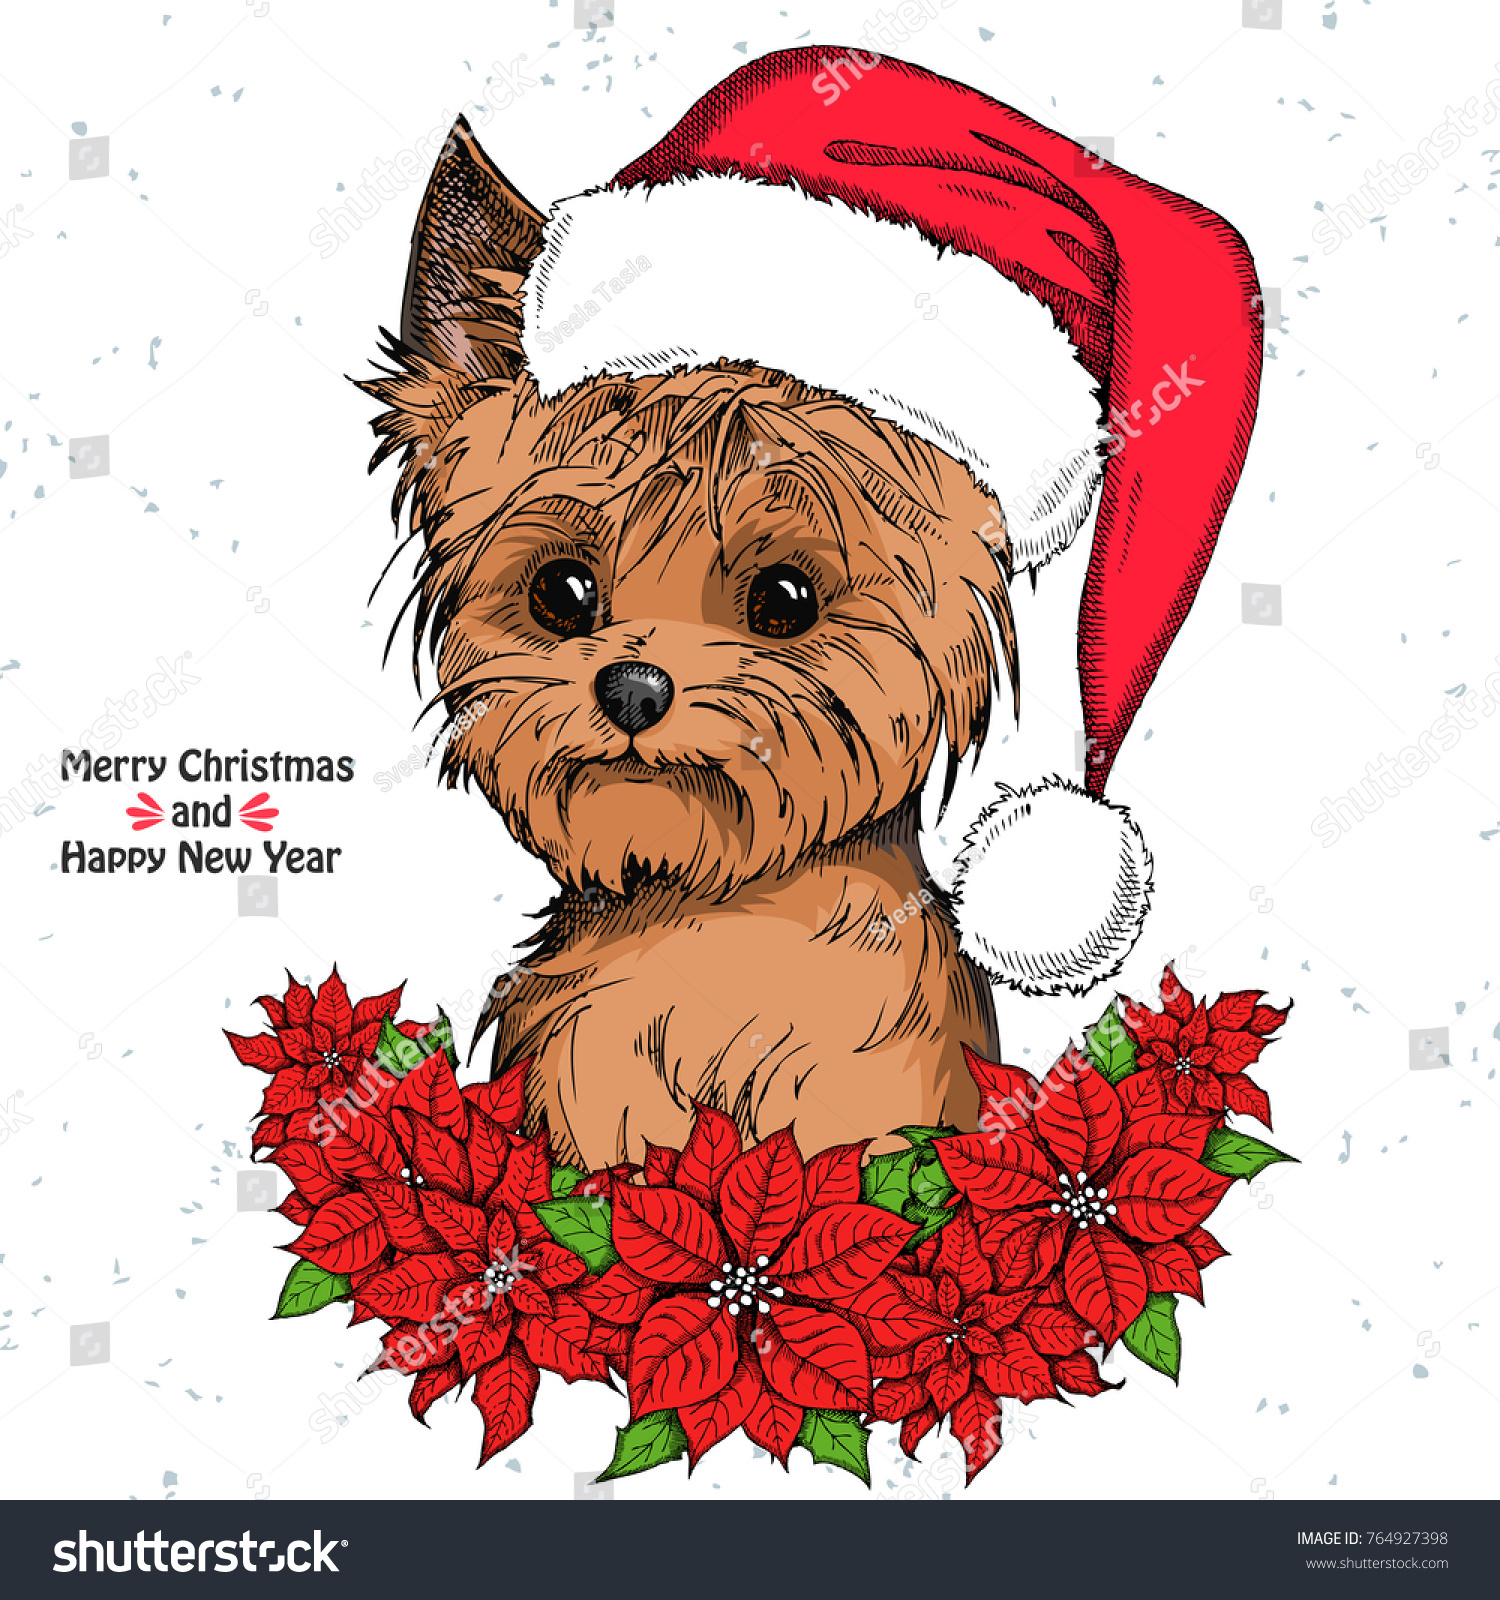 Christmas Card Cute Yorkshire Terrier Red Stock Vector (Royalty Free ...